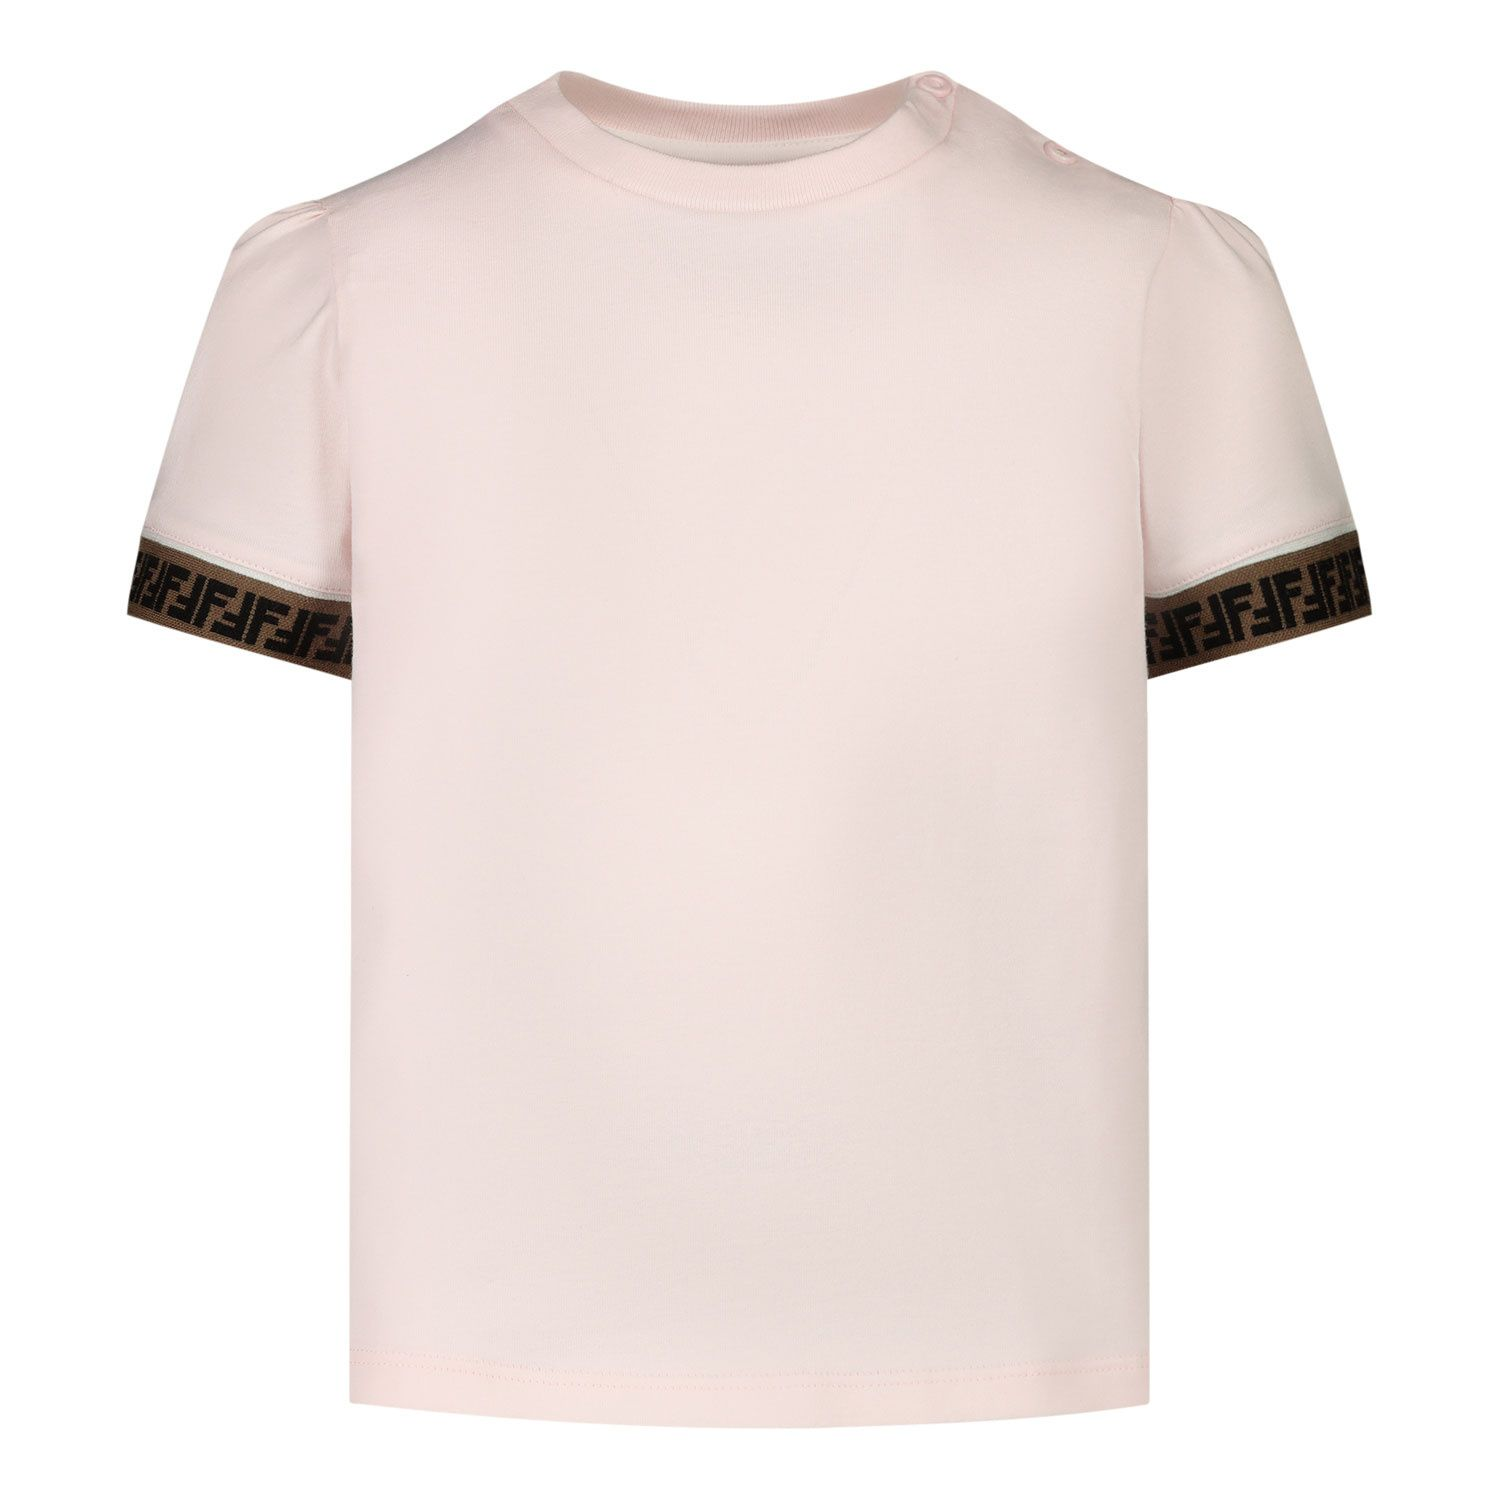 Picture of Fendi BFI117 baby shirt light pink